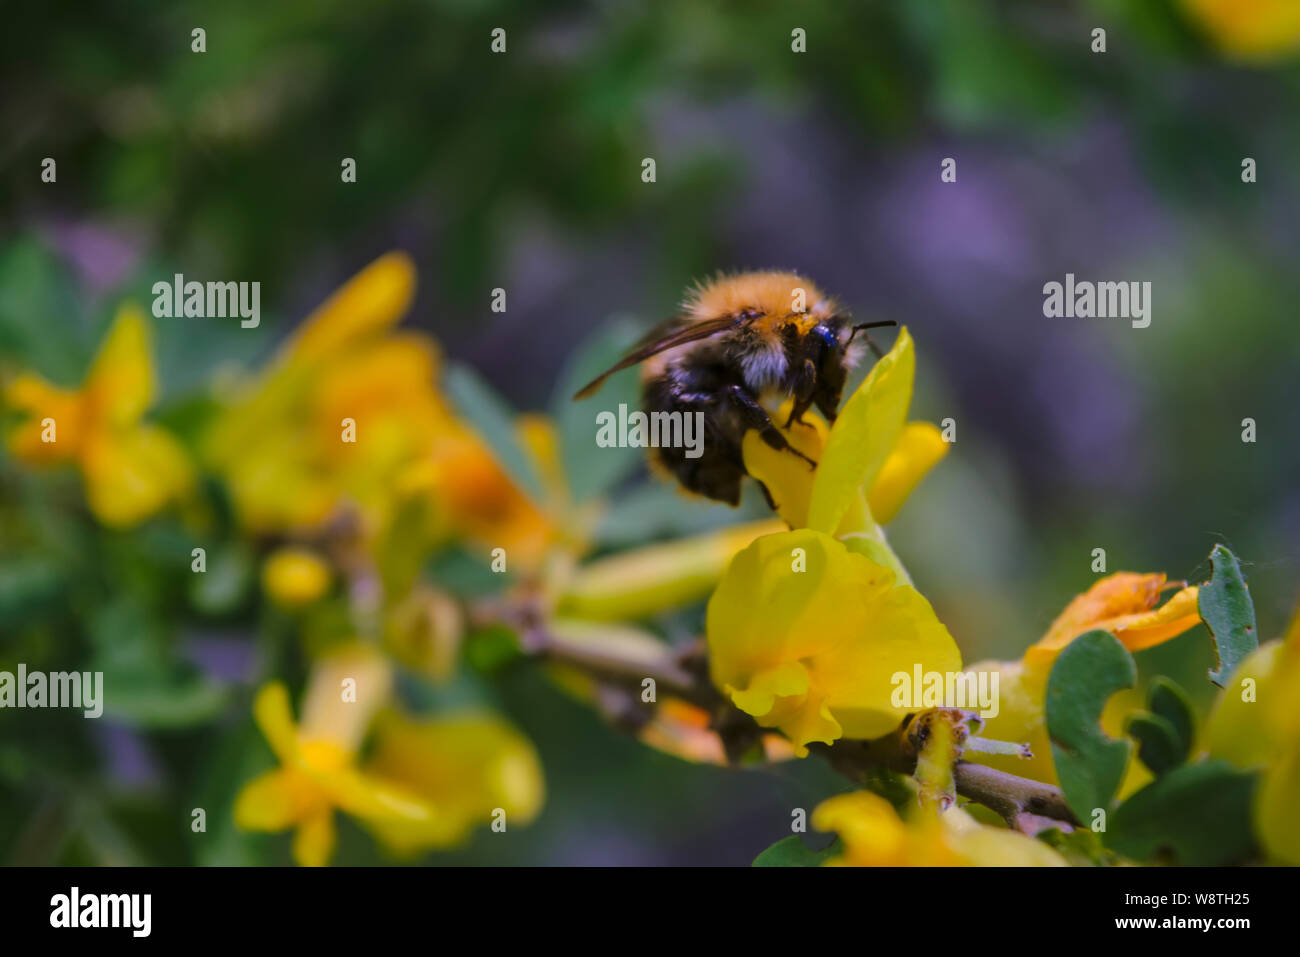 A large shaggy bumblebee collects nectar from a bright yellow flower. Stock Photo